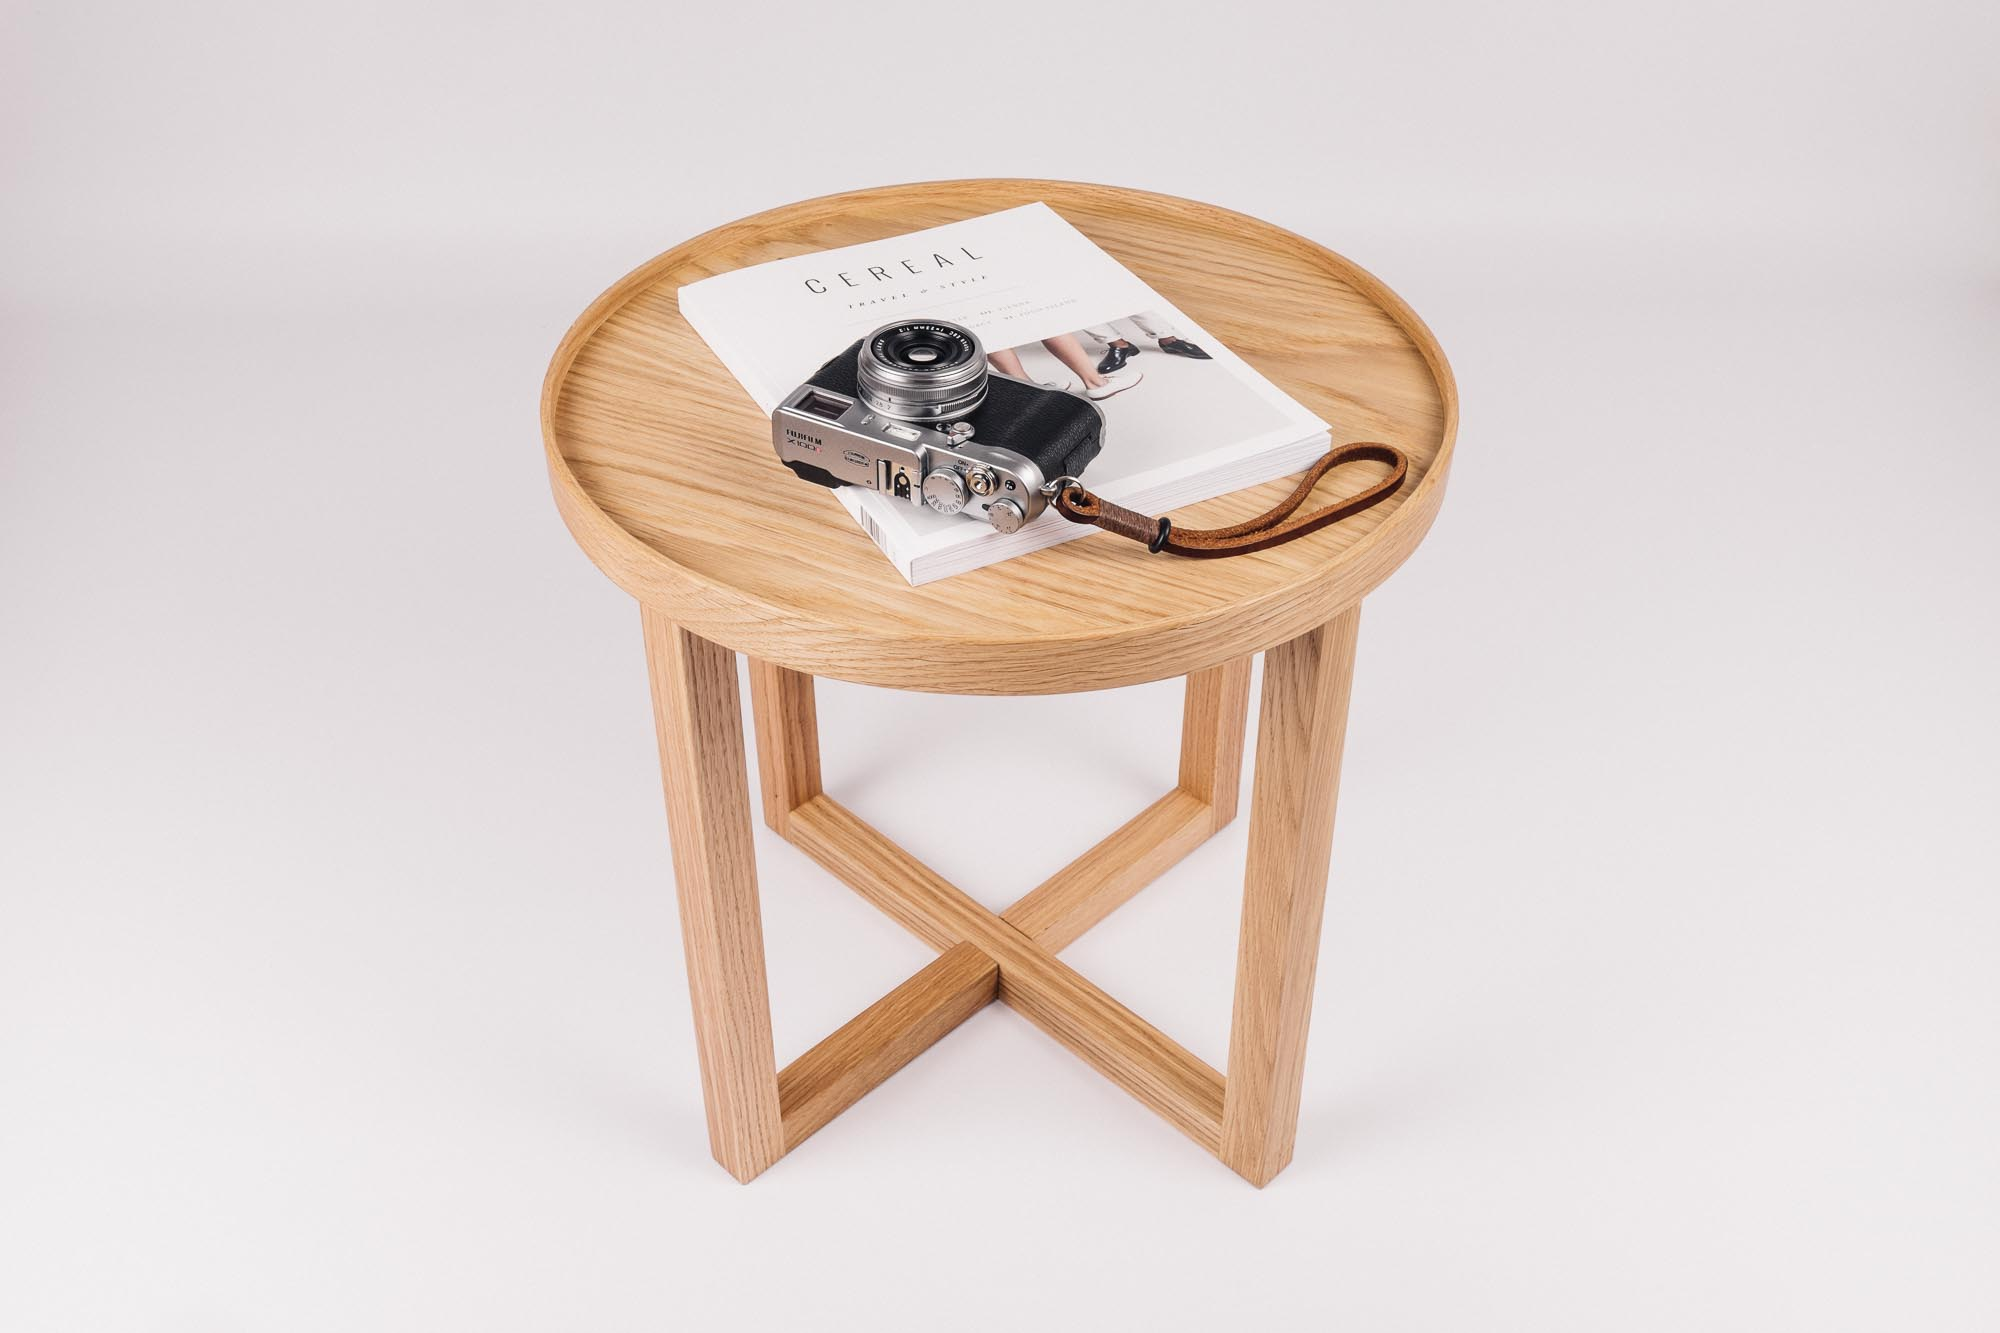 The Sweetest Side Table